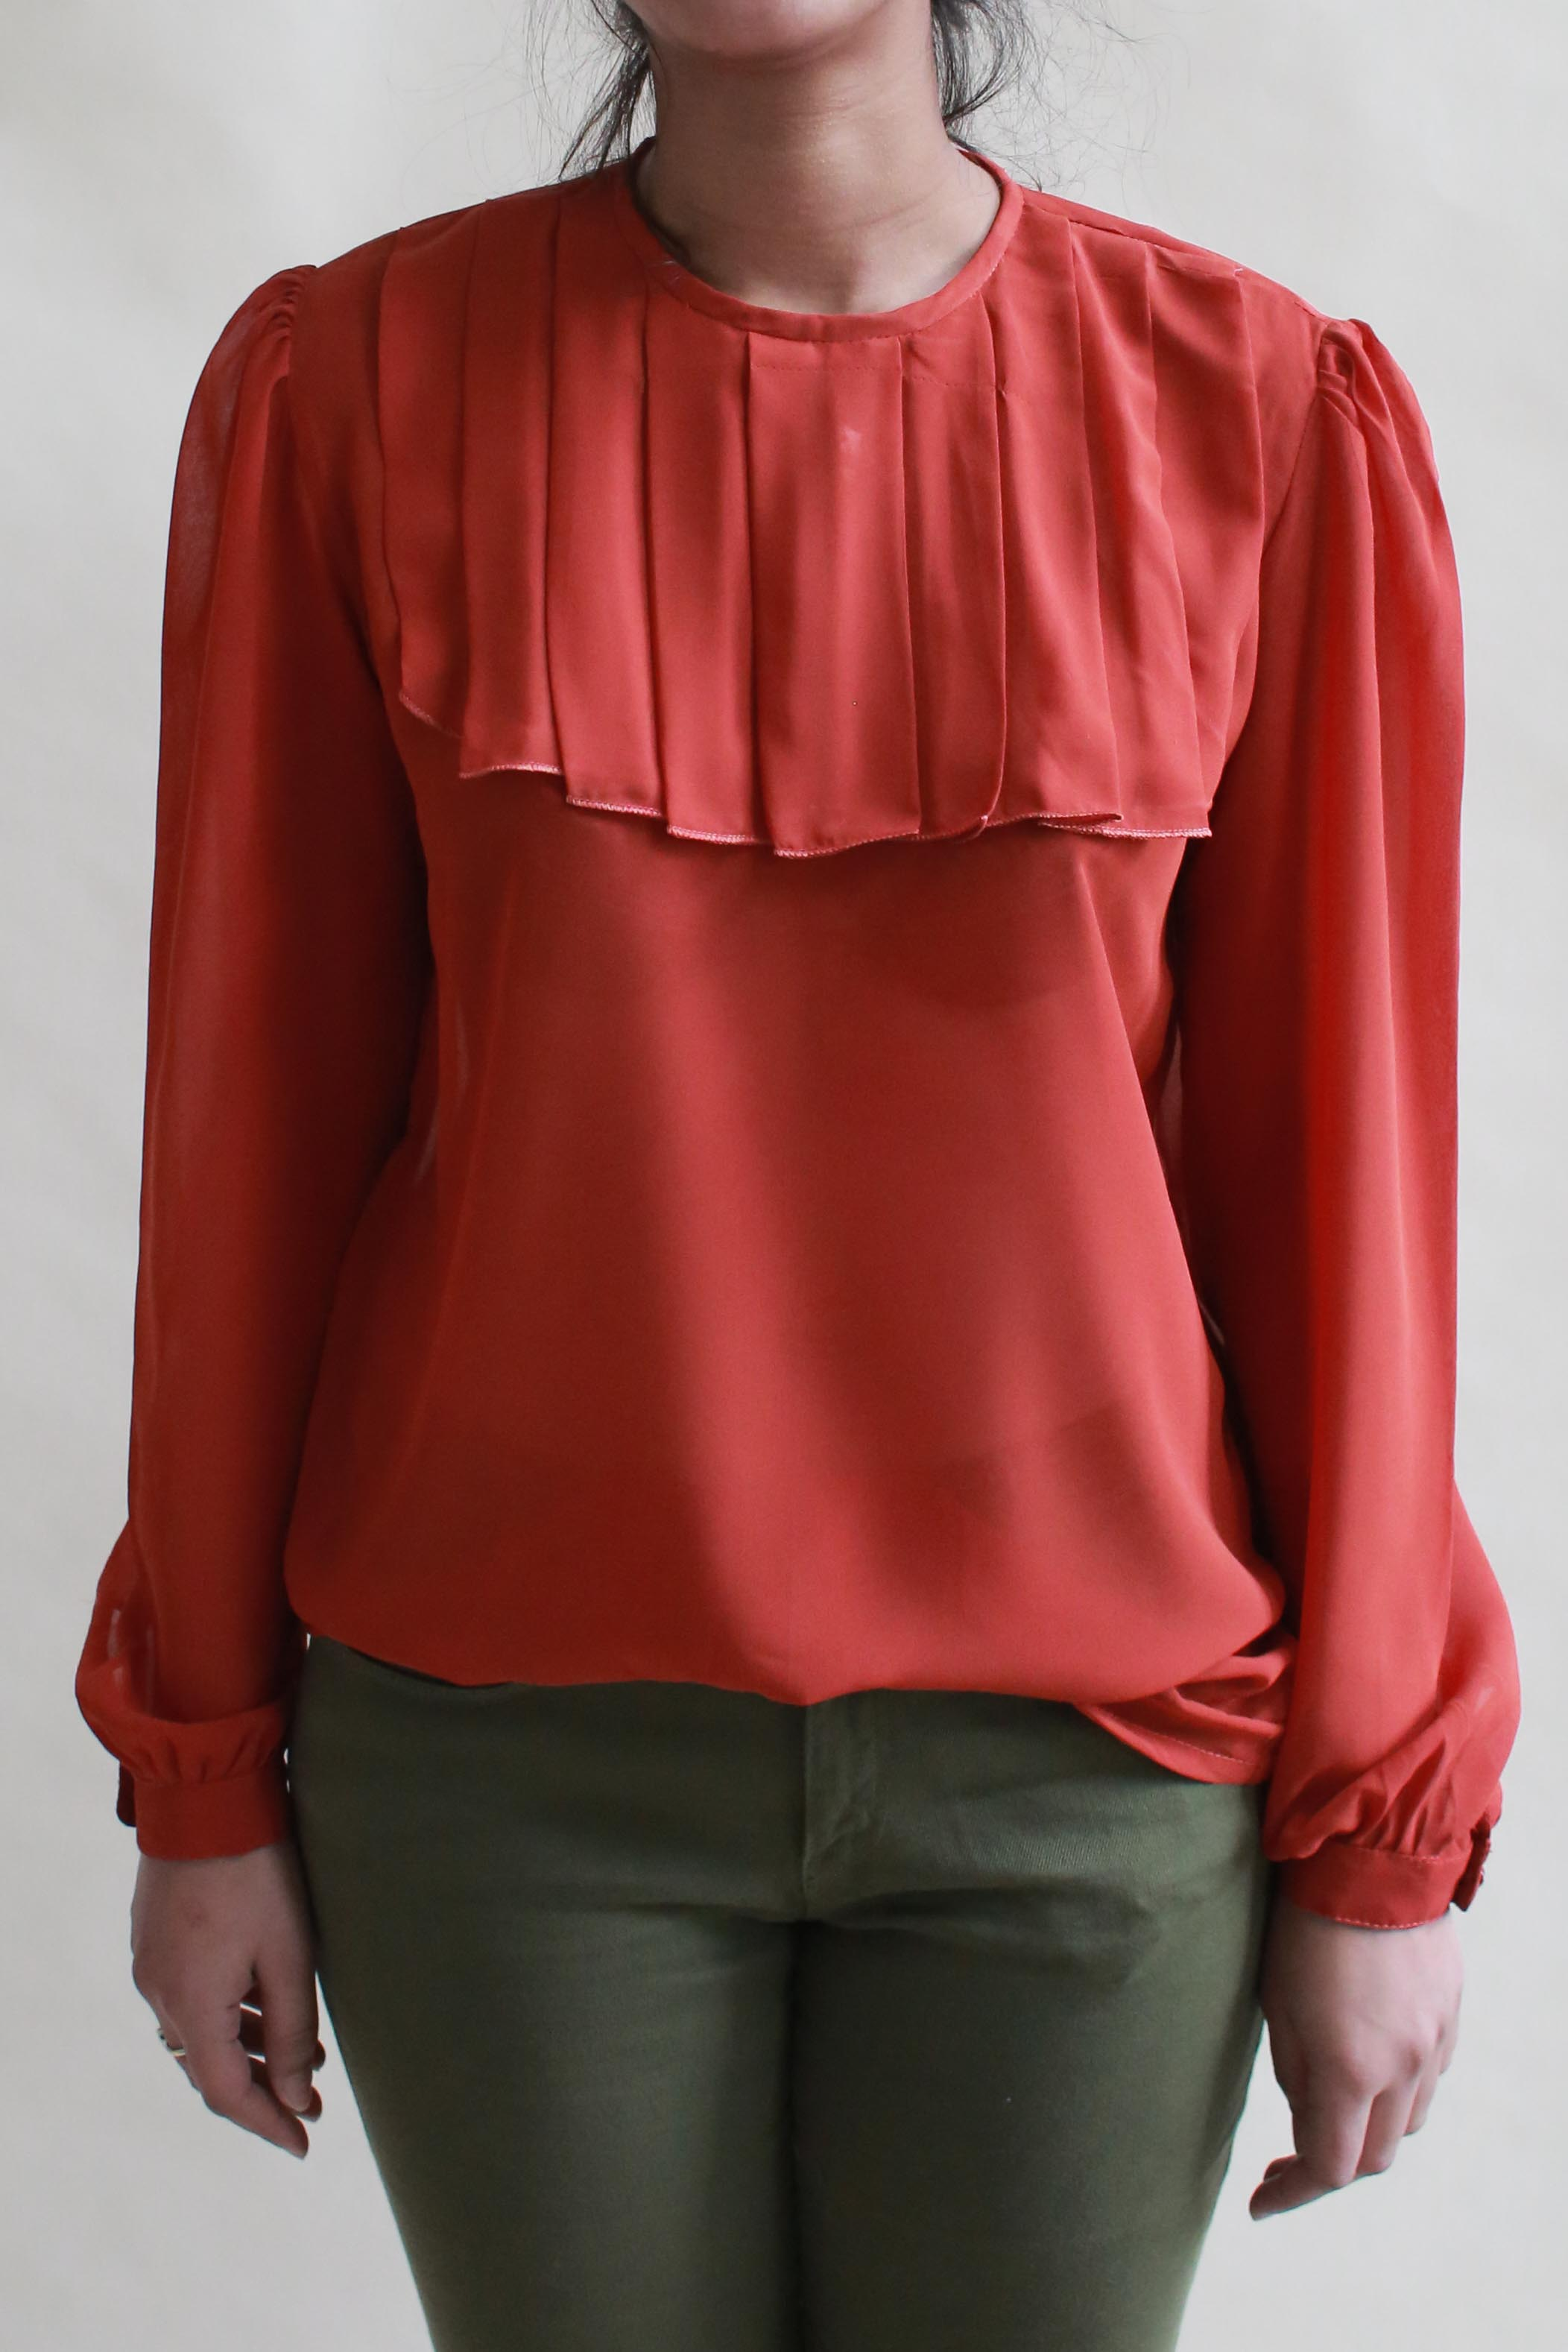 KAMI TOP IS ALSO AVAILABLE IN ORANGE -